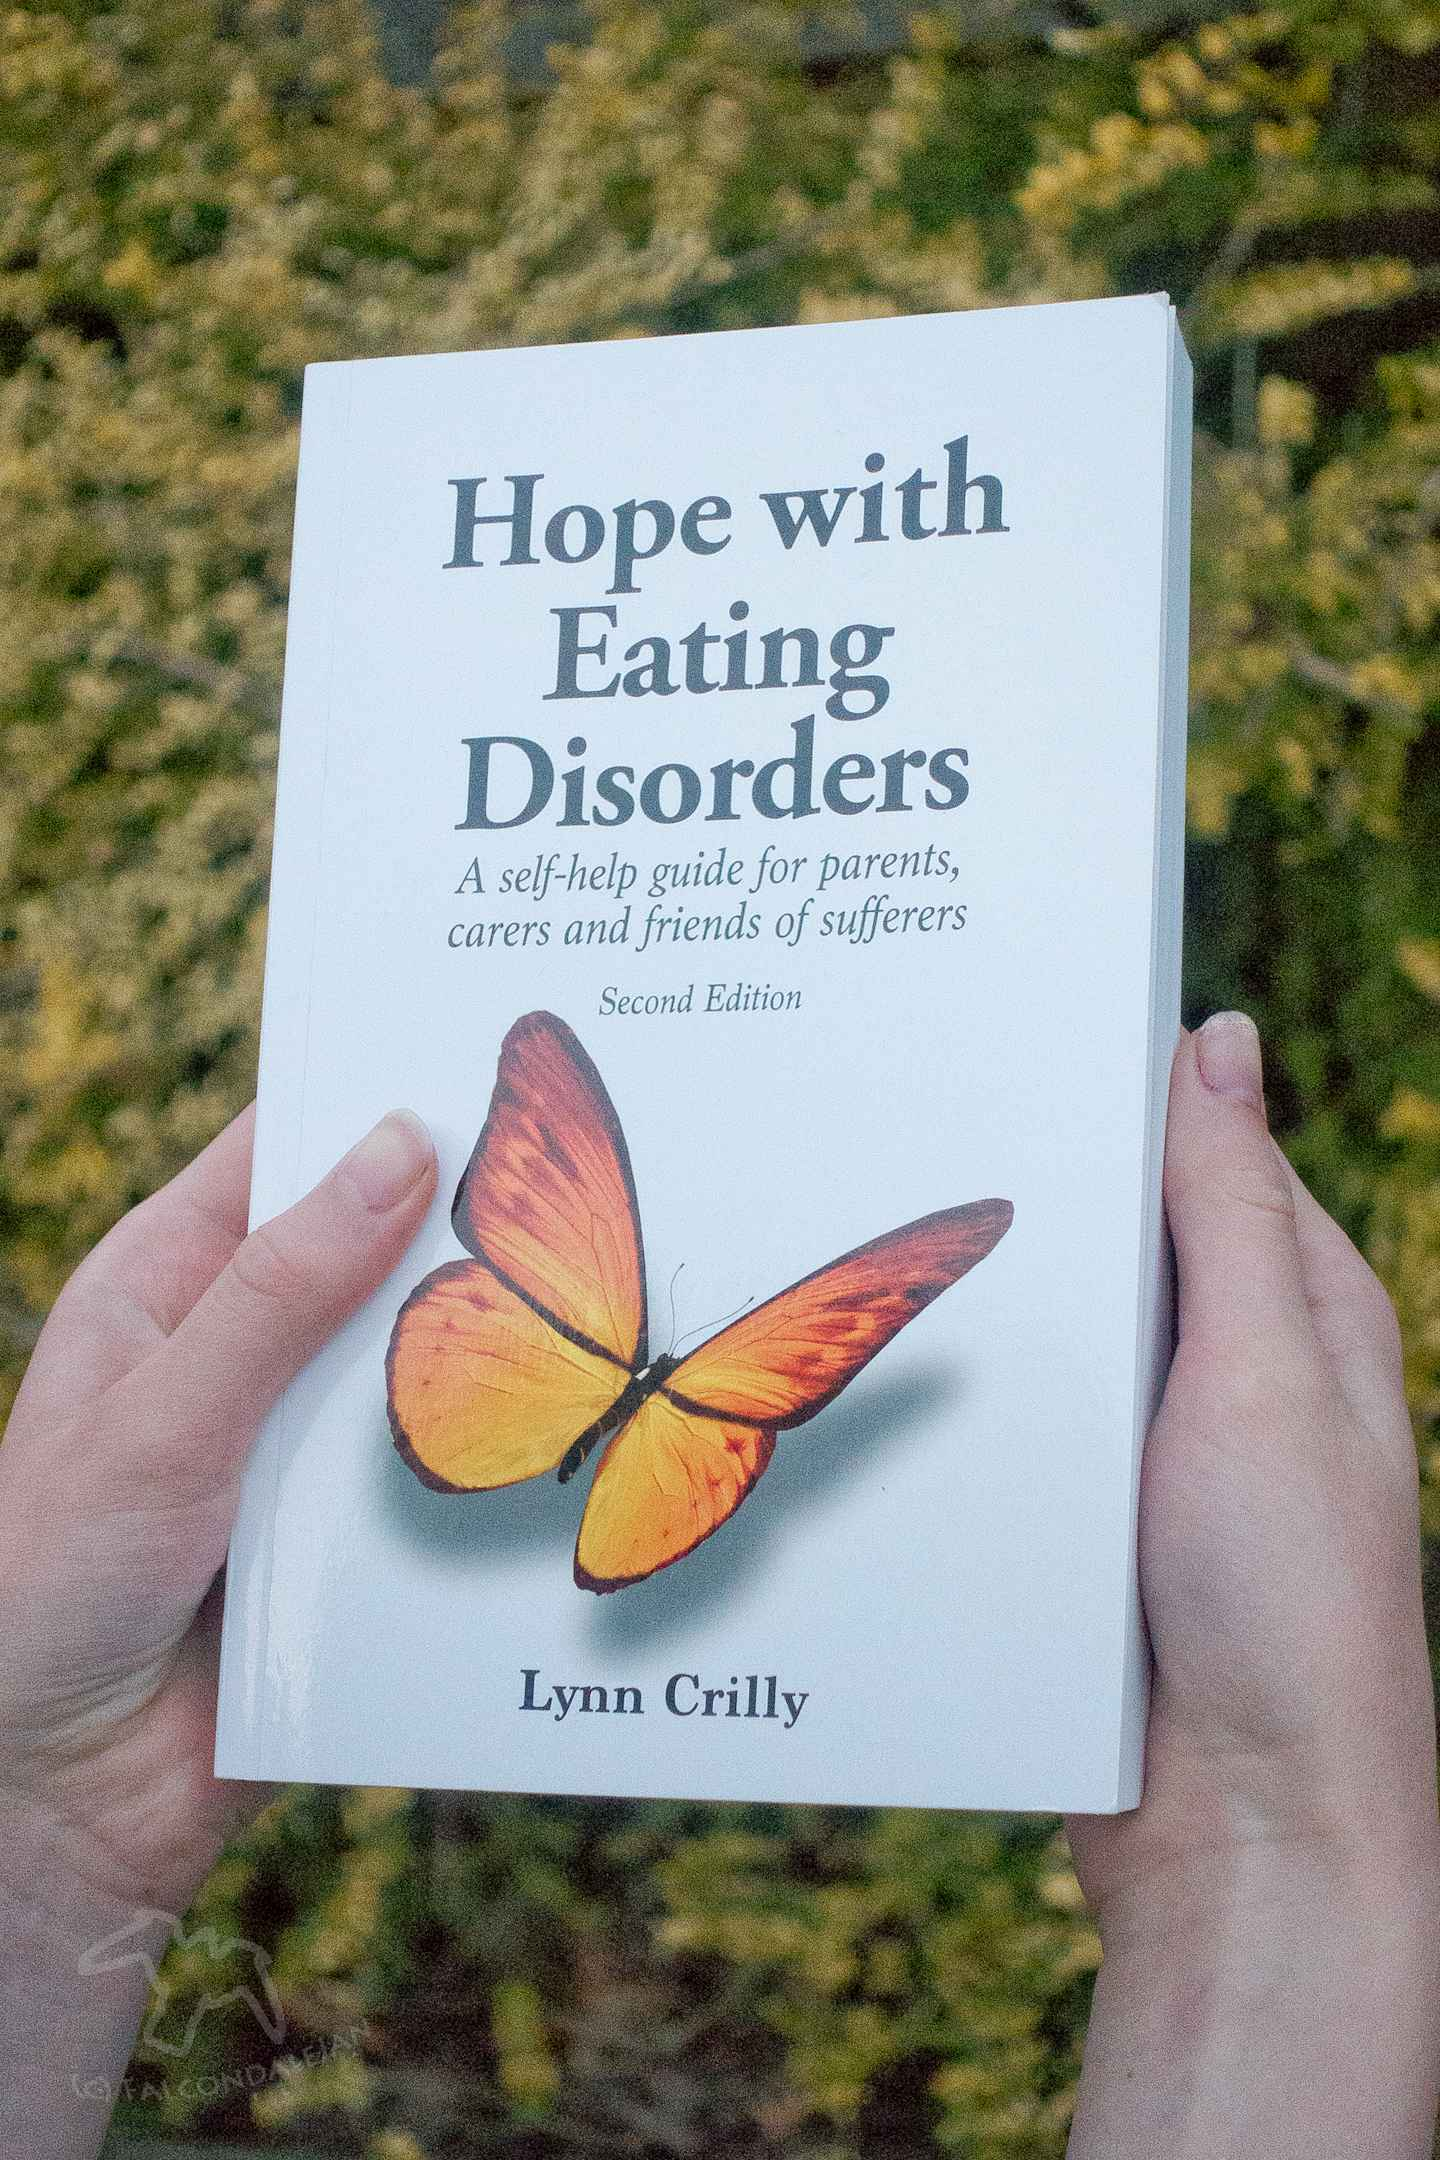 """An in depth review of Lynn Crilly's book """"Hope with Eating Disorders"""" by the parent and carer of an ED sufferer. A practical book on these mental illnesses. Hope with Eating Disorders book review on Falcondale Life blog. Image description: hands holding the book, Hope with Eating Disorders by Lynn Crilly"""